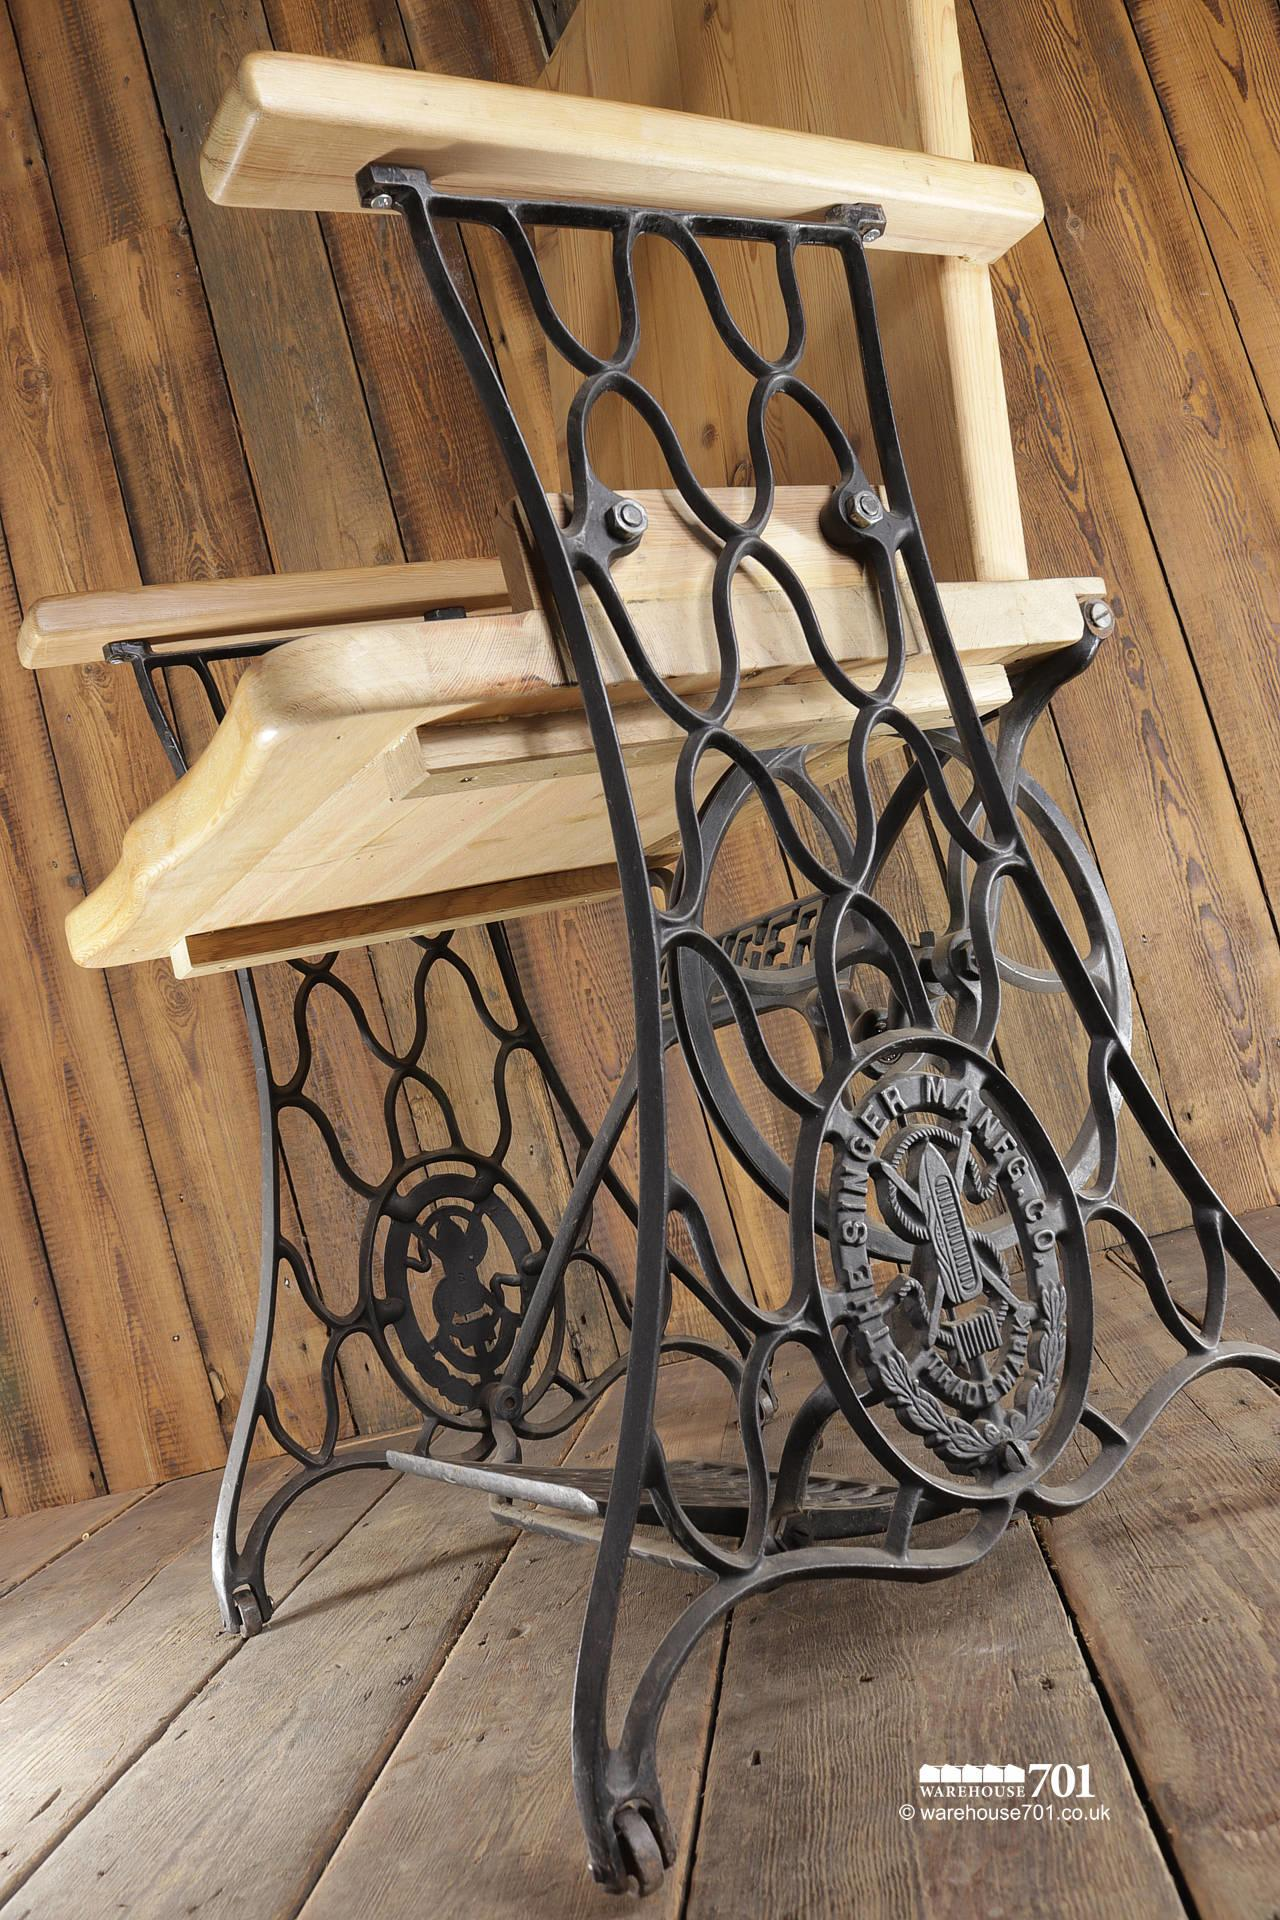 Handmade Chair with Authentic Singer Sewing Machine Treadle Frame #4